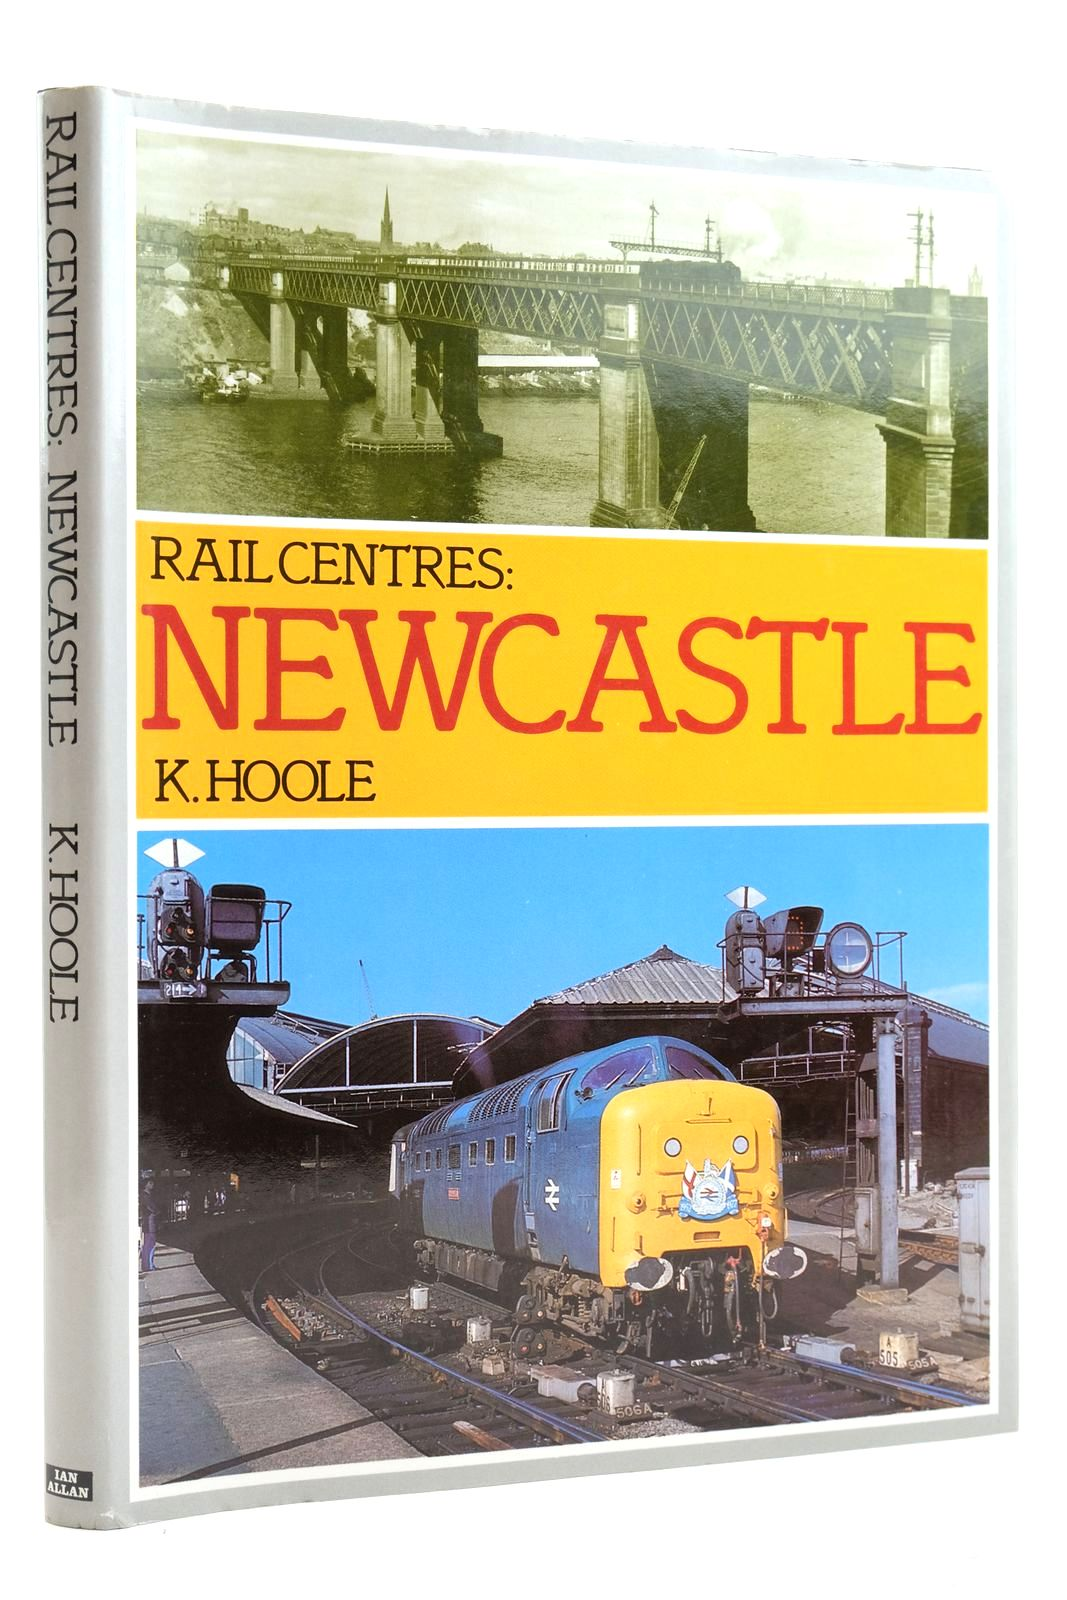 Photo of RAIL CENTRES: NEWCASTLE written by Hoole, K. published by Ian Allan Ltd. (STOCK CODE: 2133007)  for sale by Stella & Rose's Books